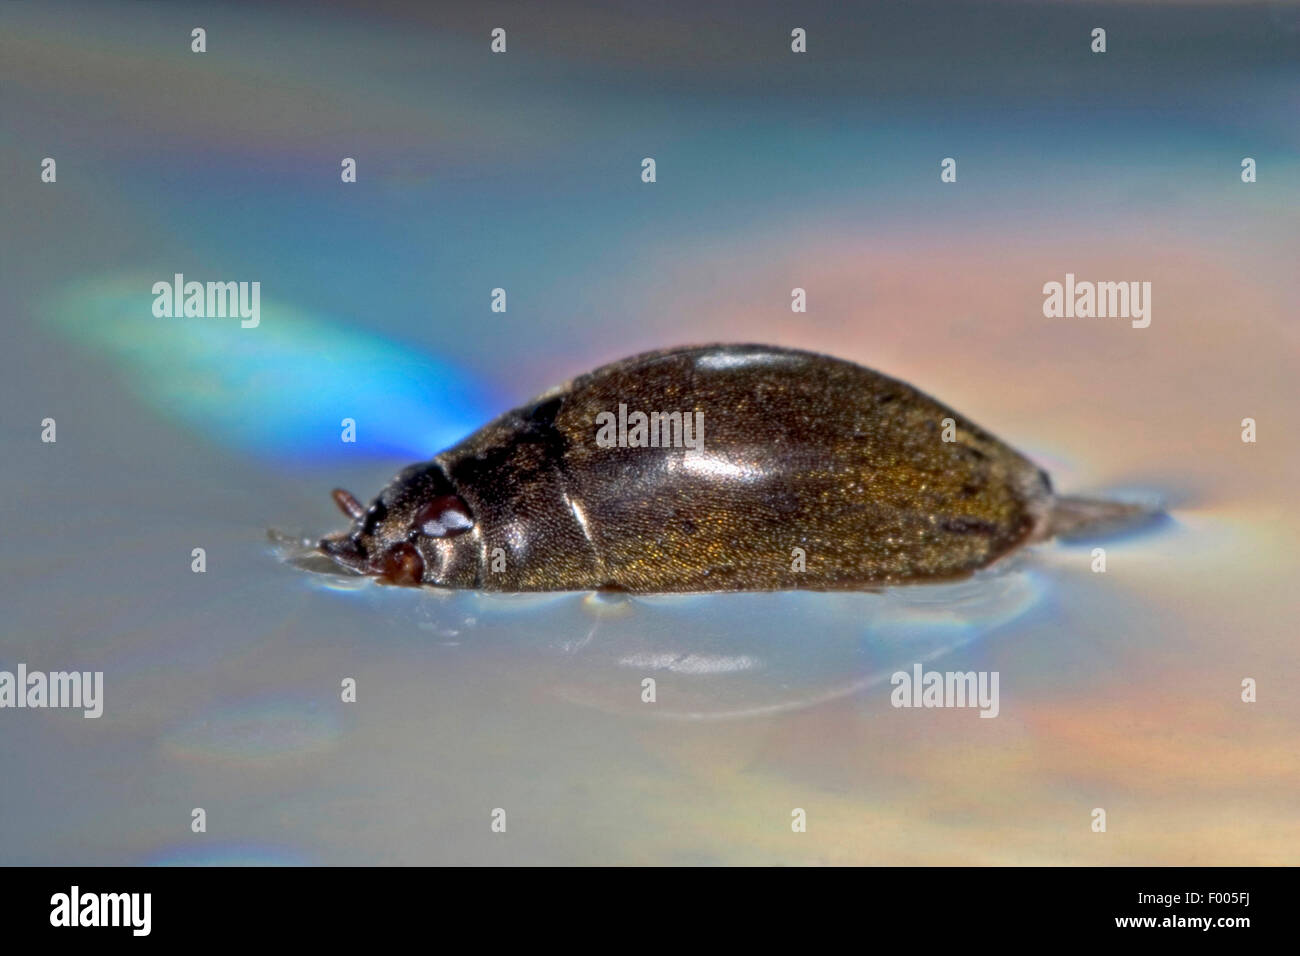 Hairy whirligig, Hairy whirligig beetle (Orectochilus villosus), swims at water surface, Germany - Stock Image